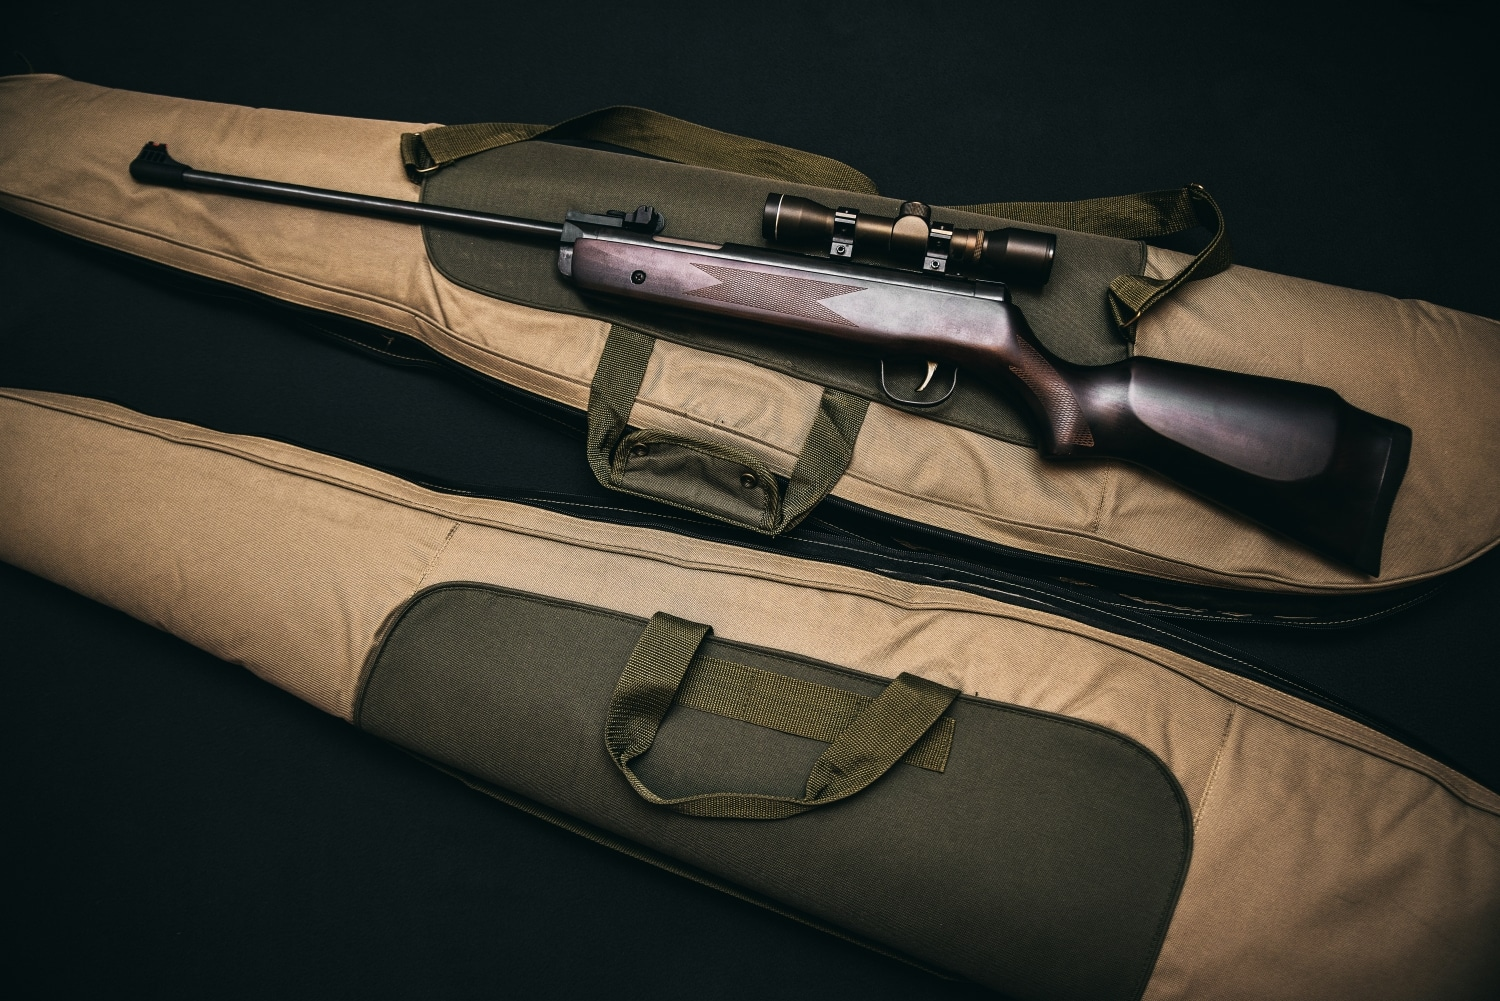 Rifle resting on top of a gun case